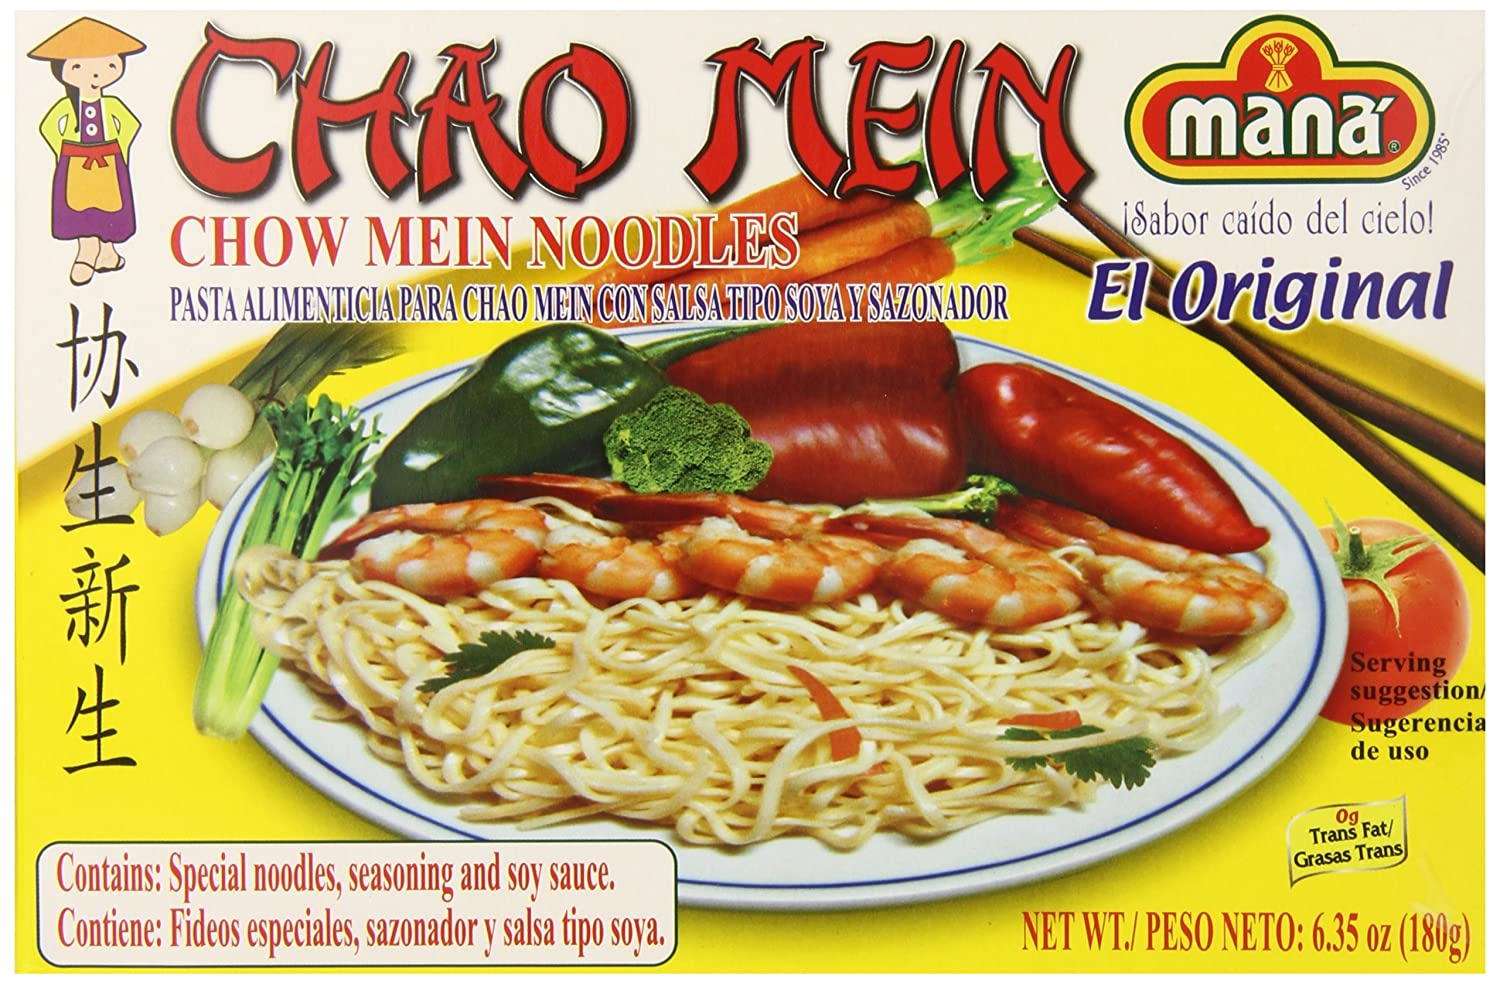 Amazon.com : Mama Lycha Mana Chow Mein Noodles, 6.35 Ounce : Grocery & Gourmet Food